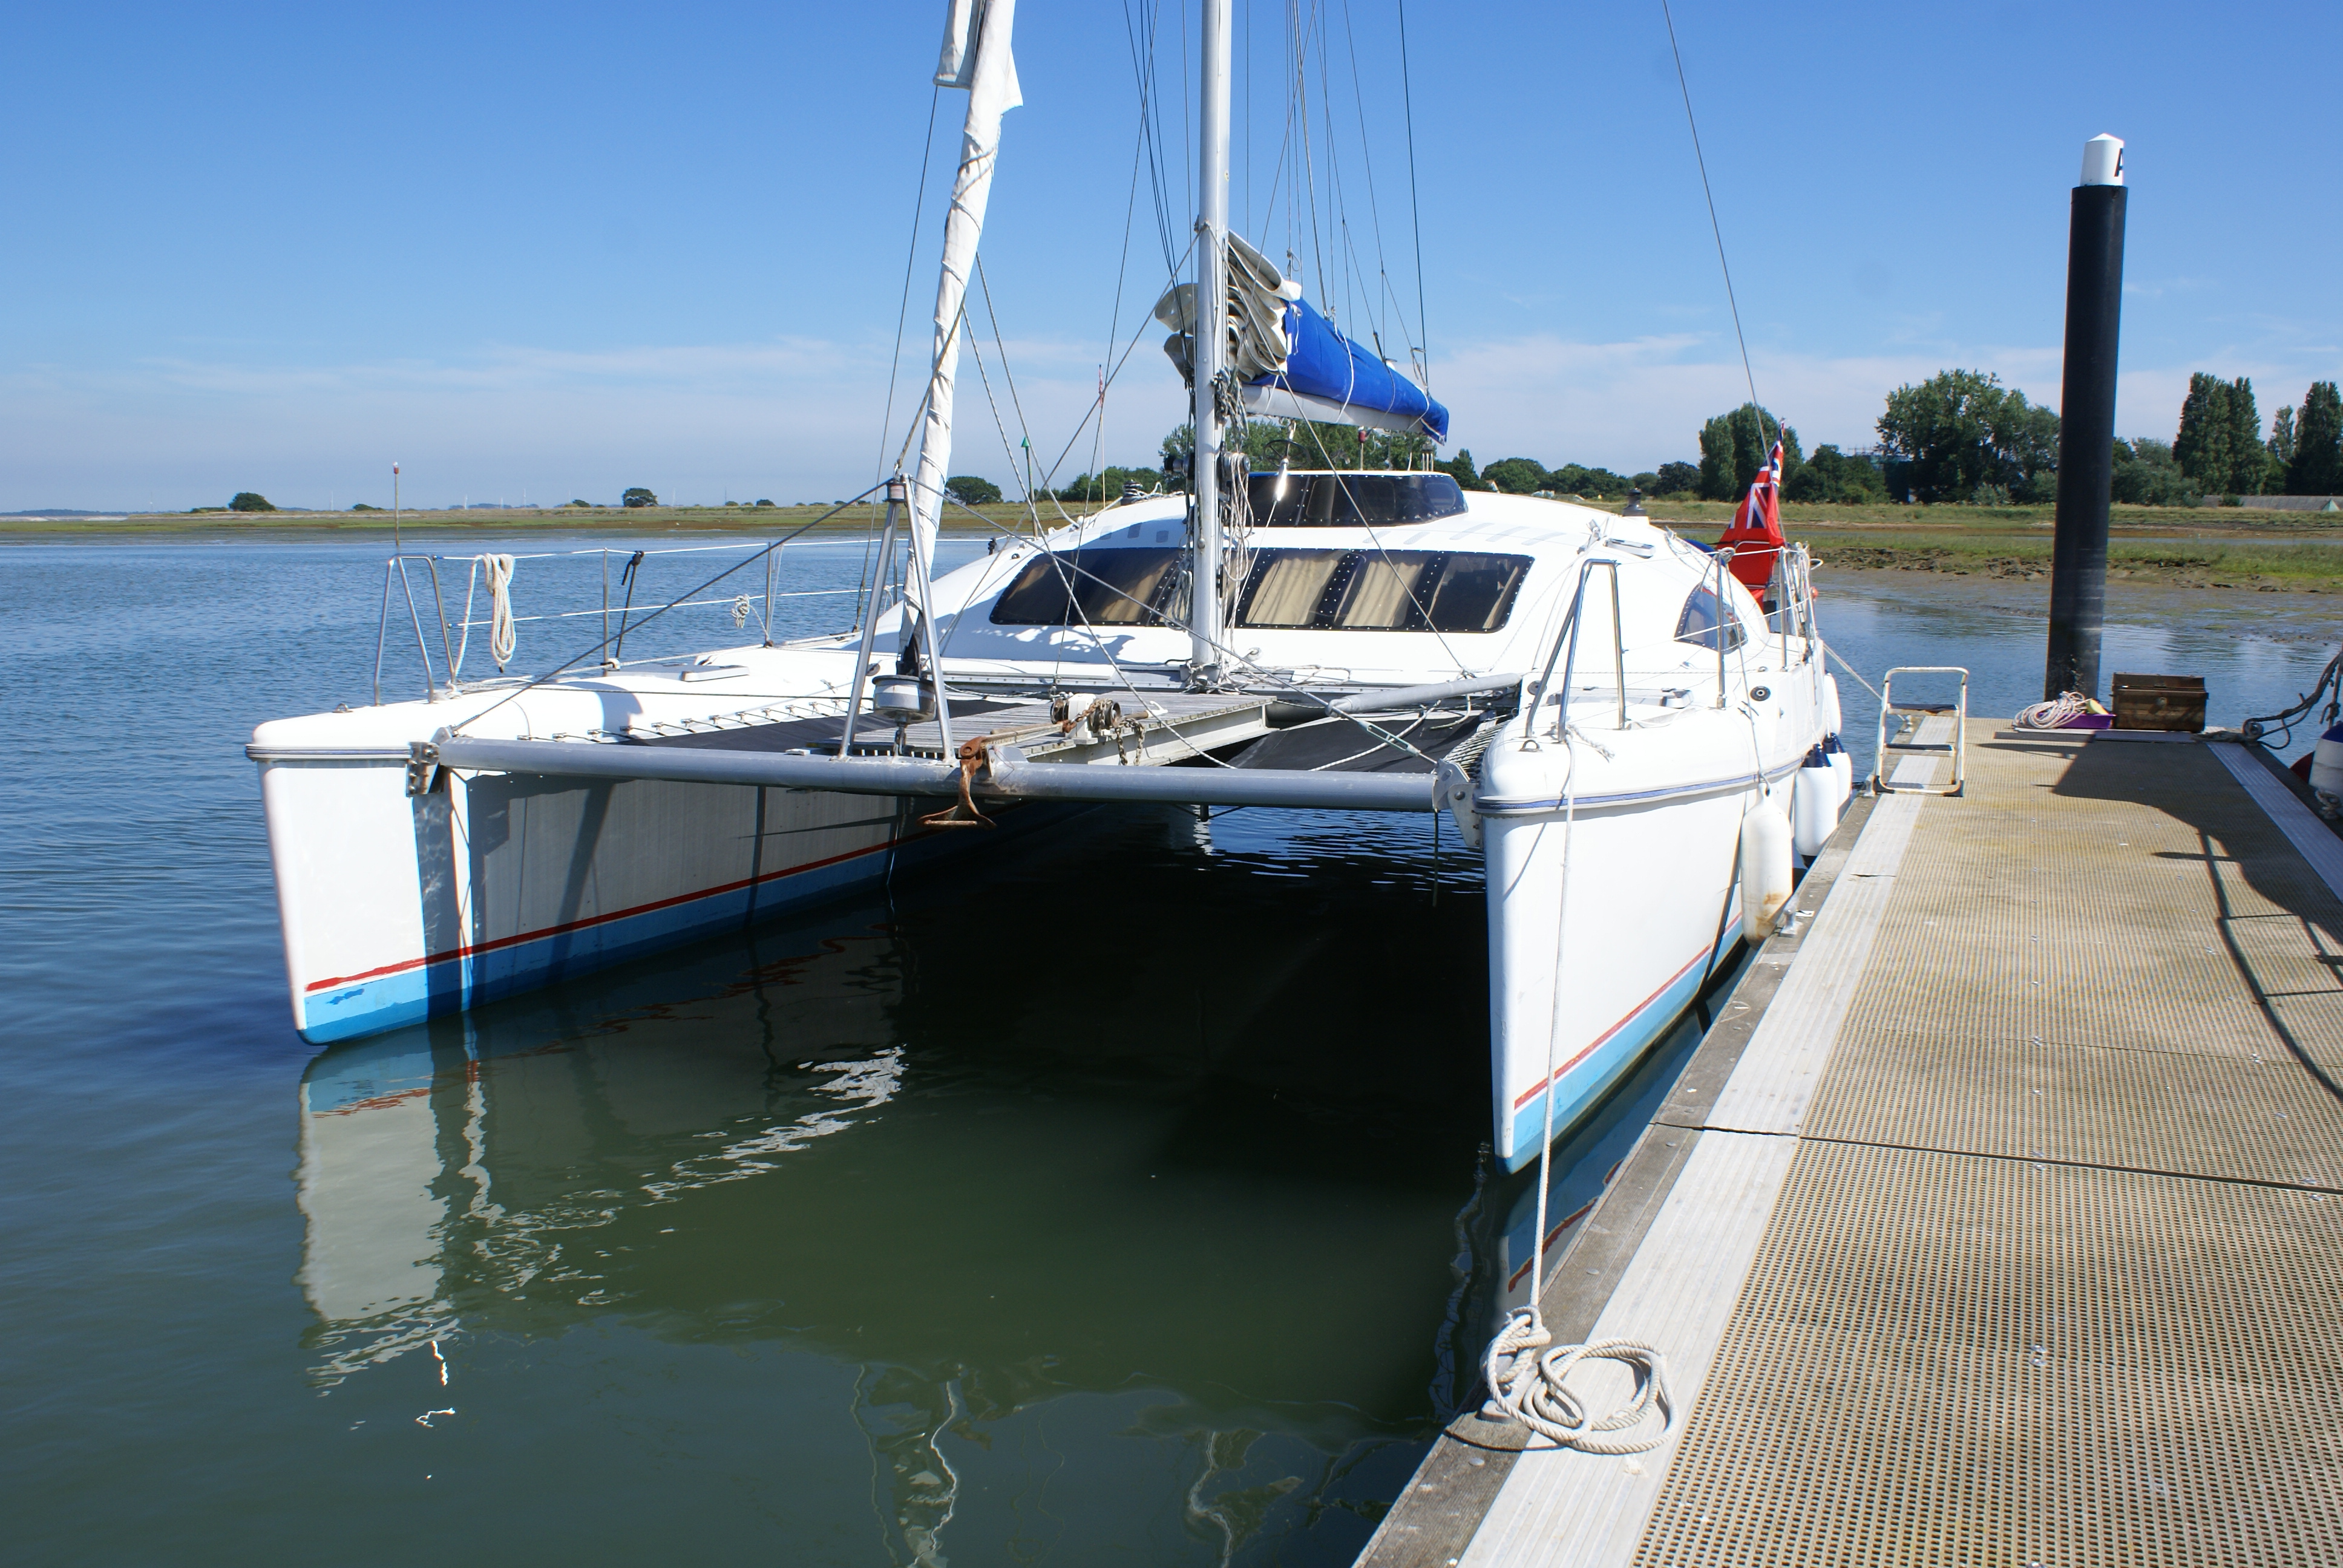 Cheap Multis and Projects - Page 152 - Cruisers & Sailing Forums